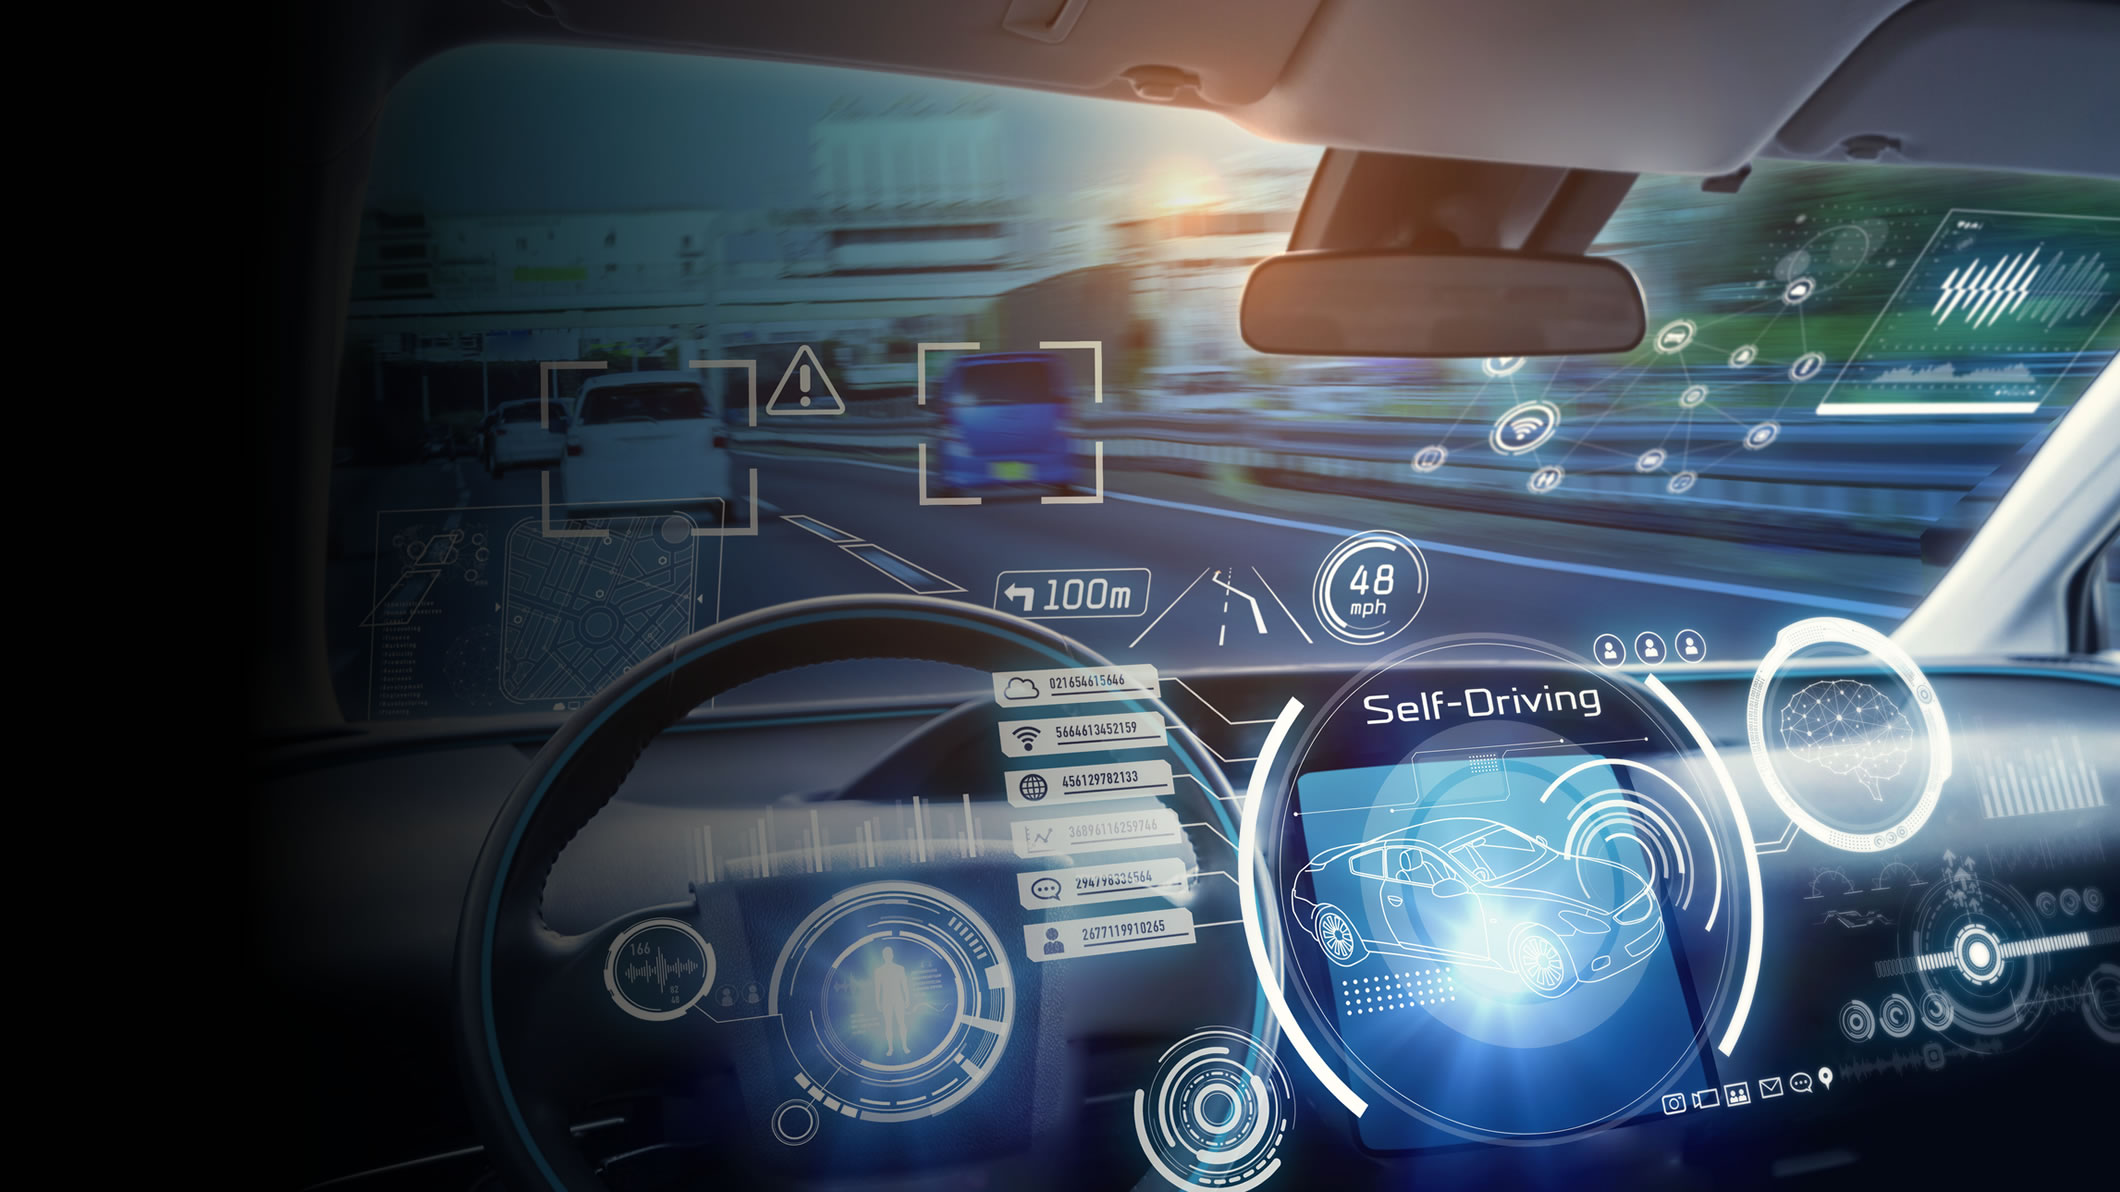 interior of self-driving vehicle displaying technology features